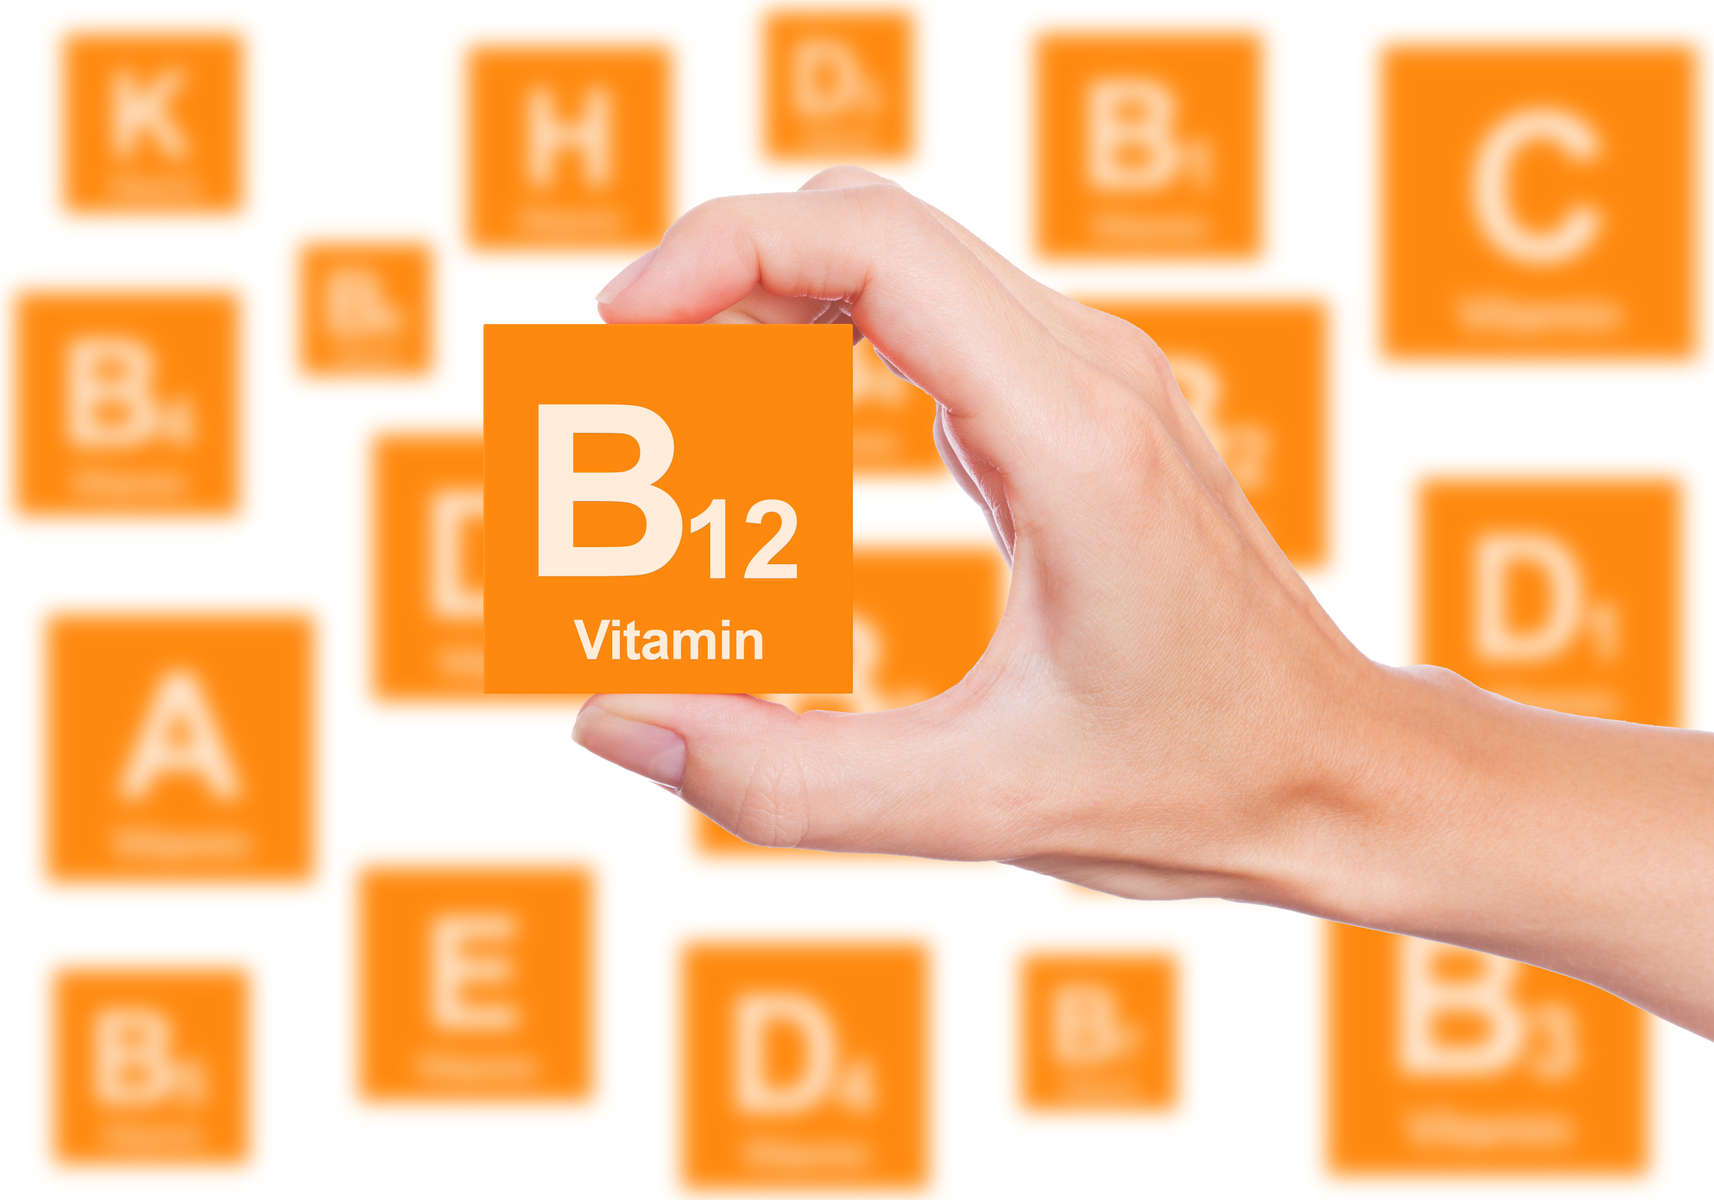 blog-image-vitamin-B12-dollar-paid